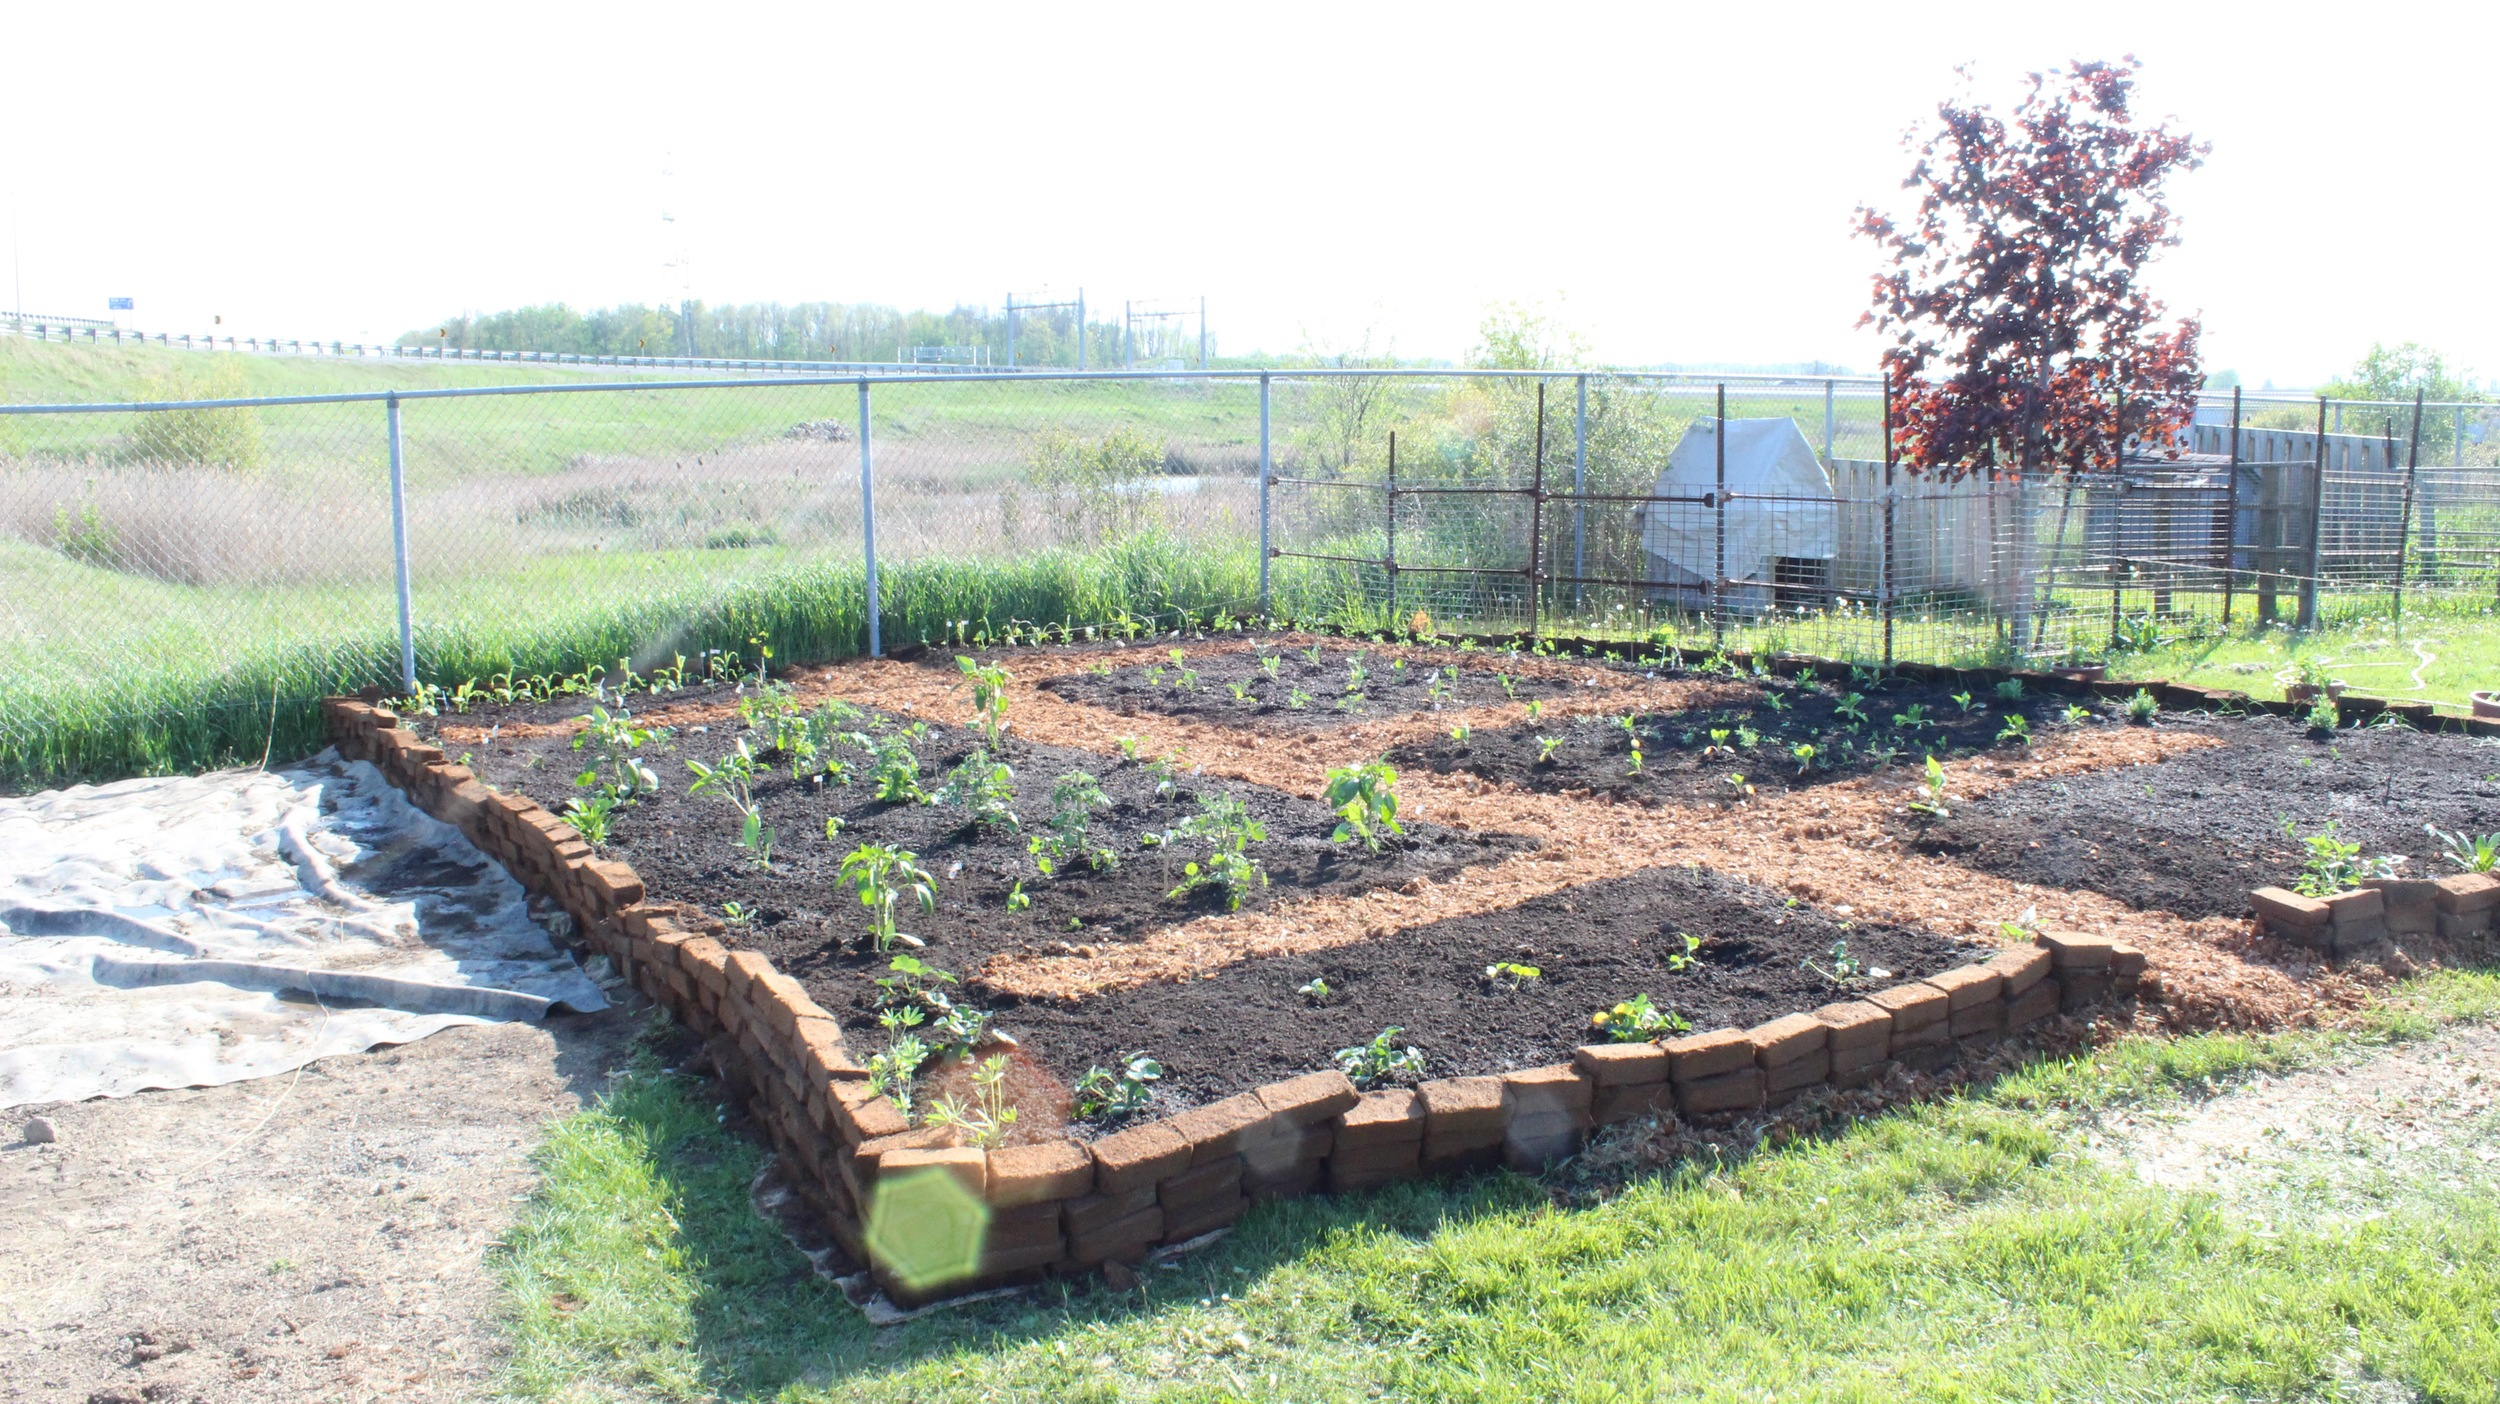 Compared to our Planting Day Event!(May 2016)